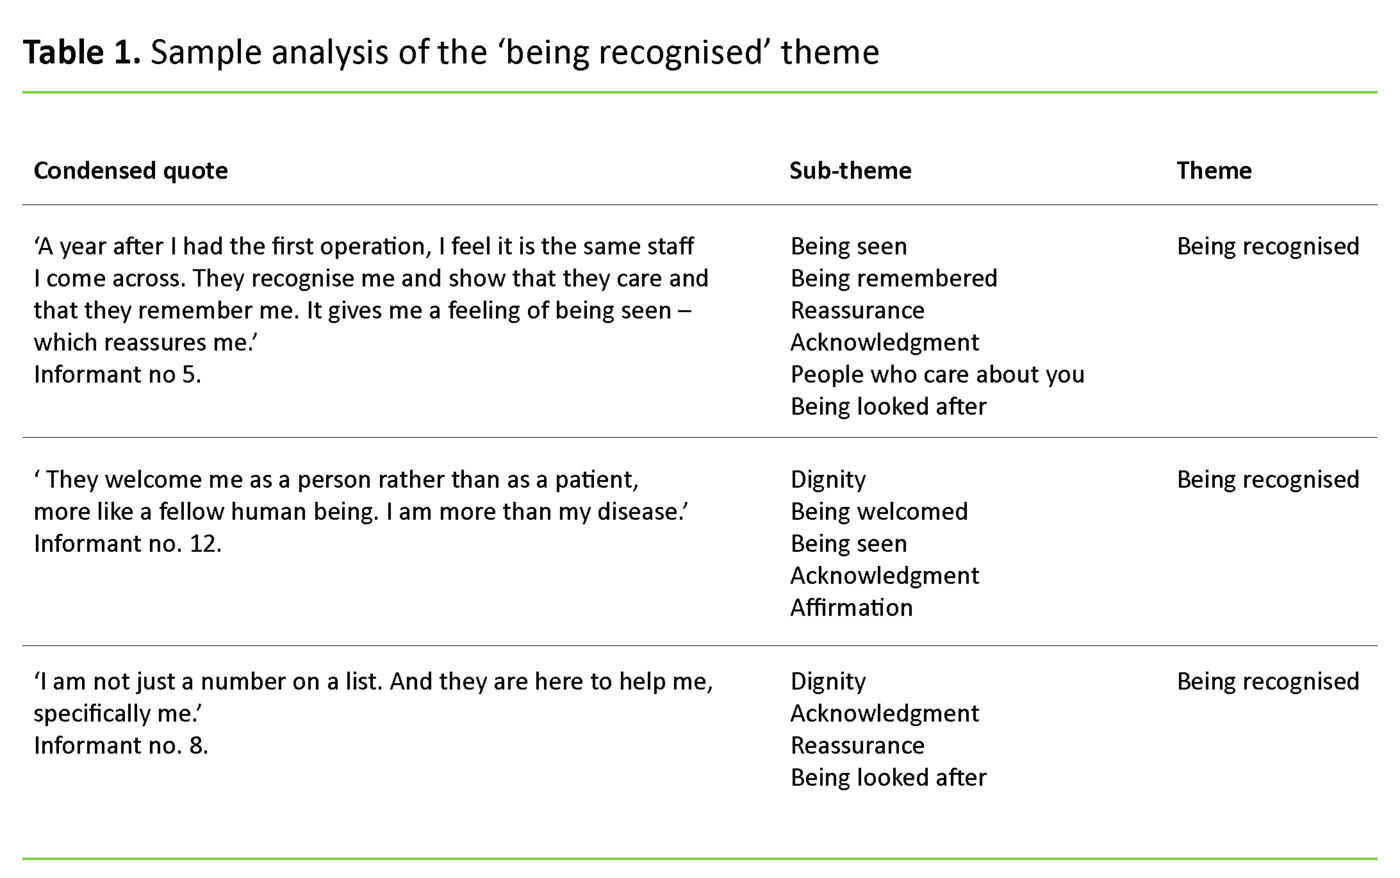 Table 1. Sample analysis of the 'being recognised' theme